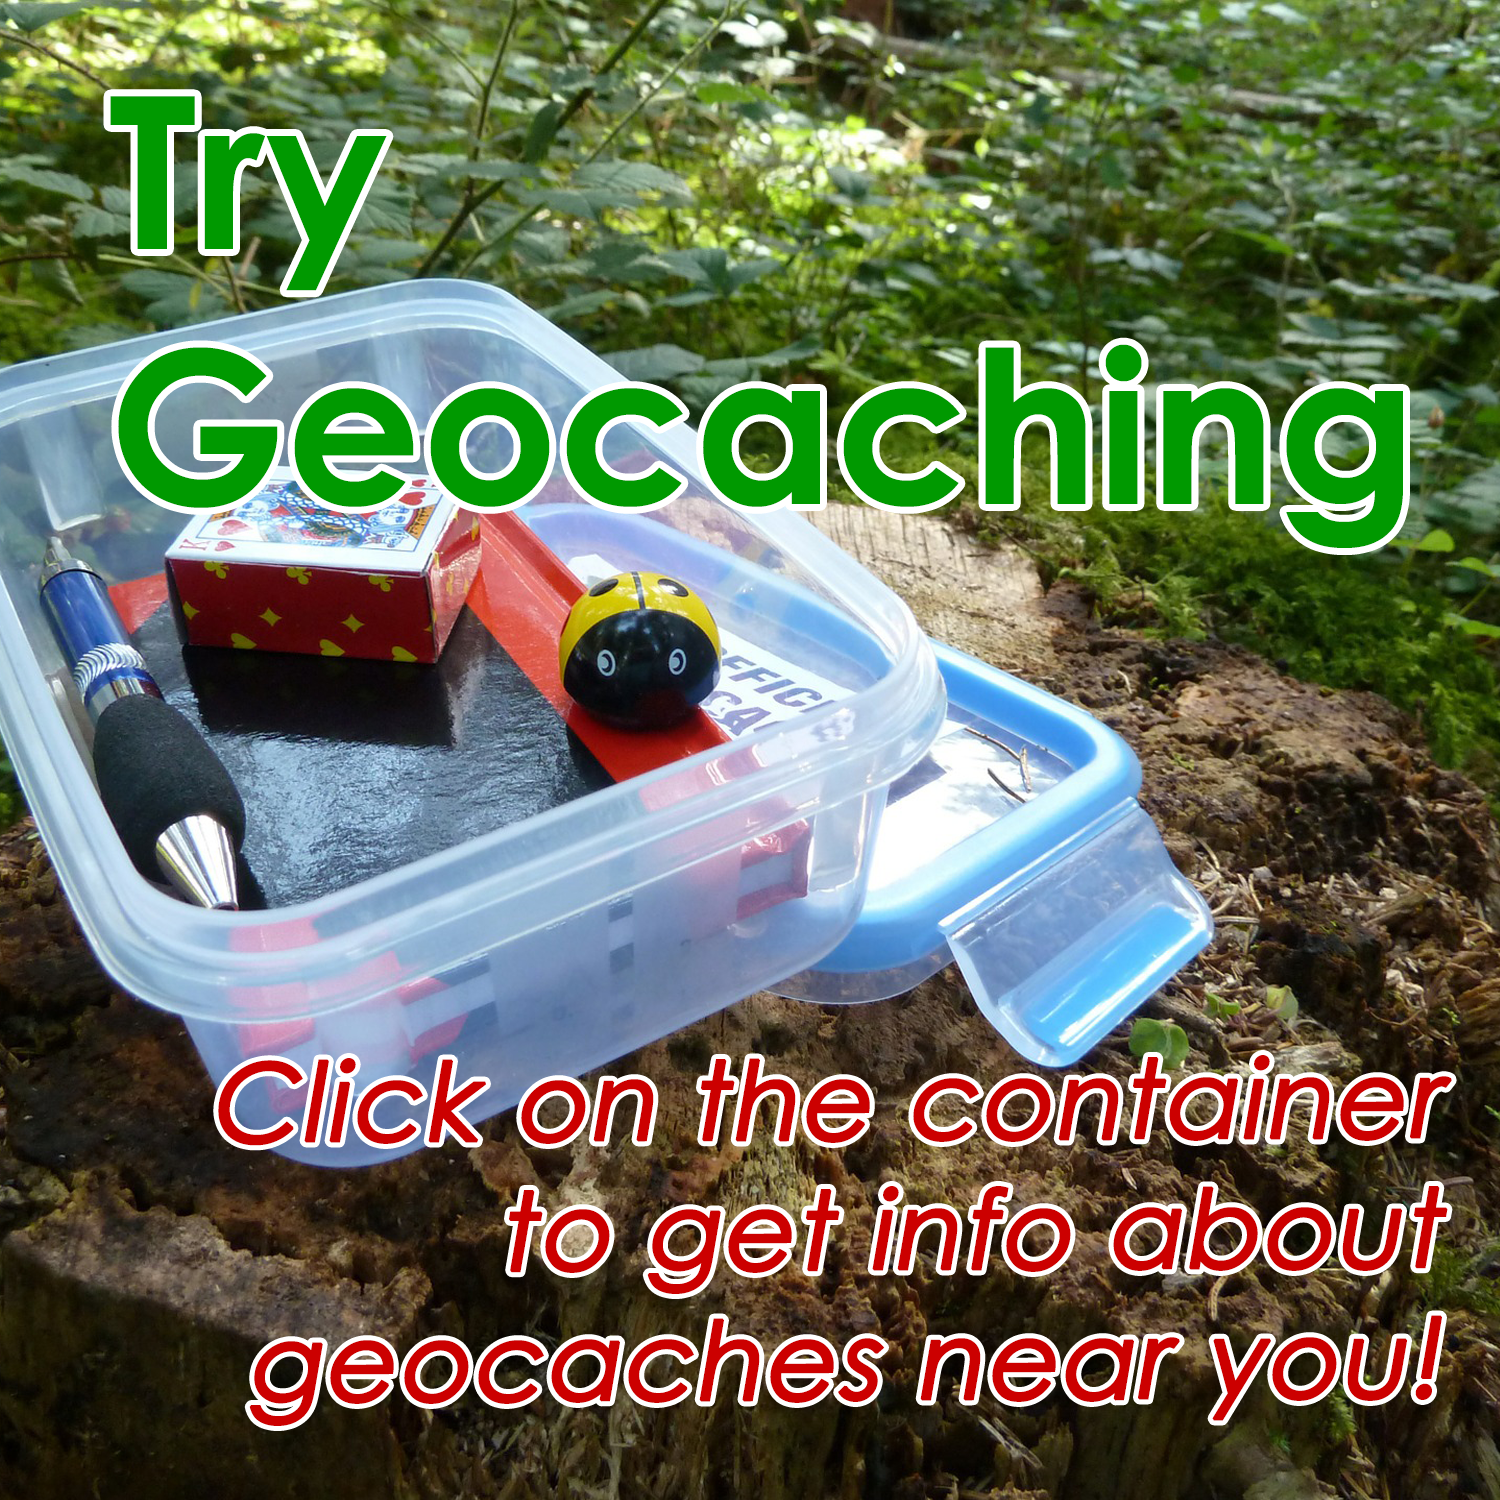 Try Geocaching! Click on the image to get information about geocaches near you!